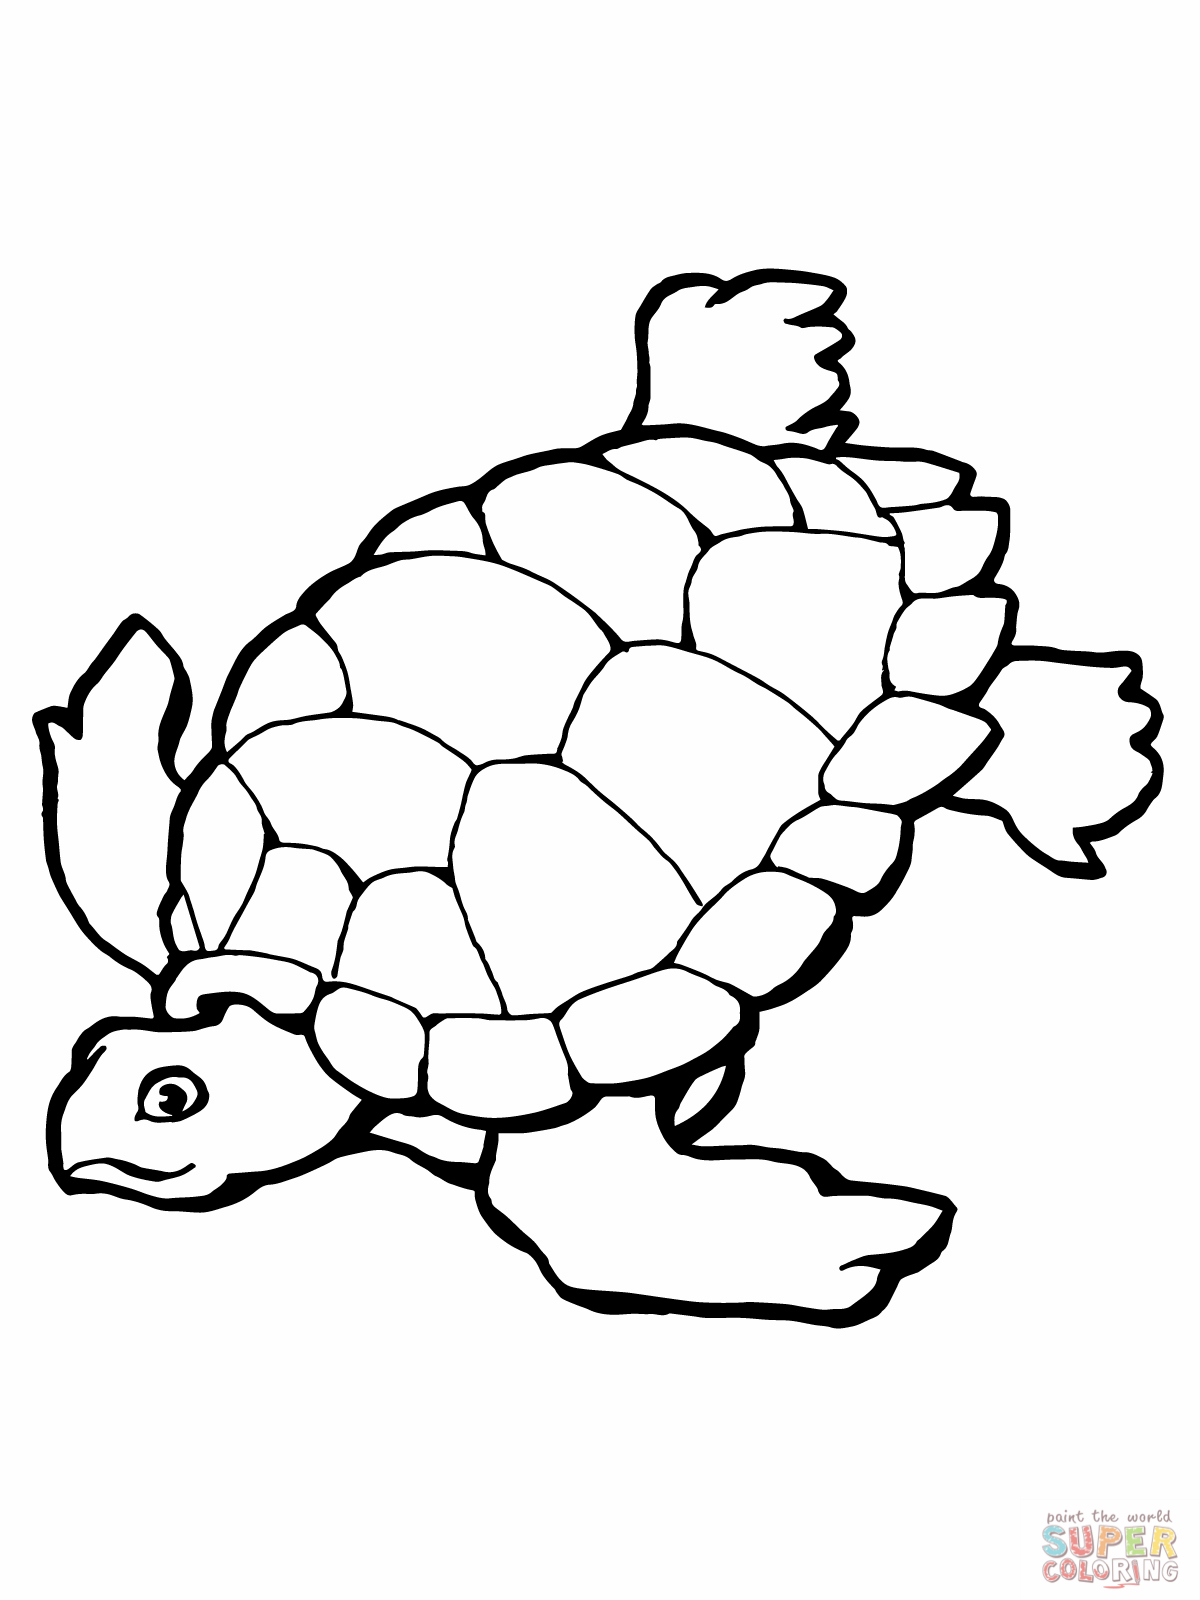 sea turtle coloring pages printable giant green sea turtle coloring page giant green sea turtle sea pages printable coloring